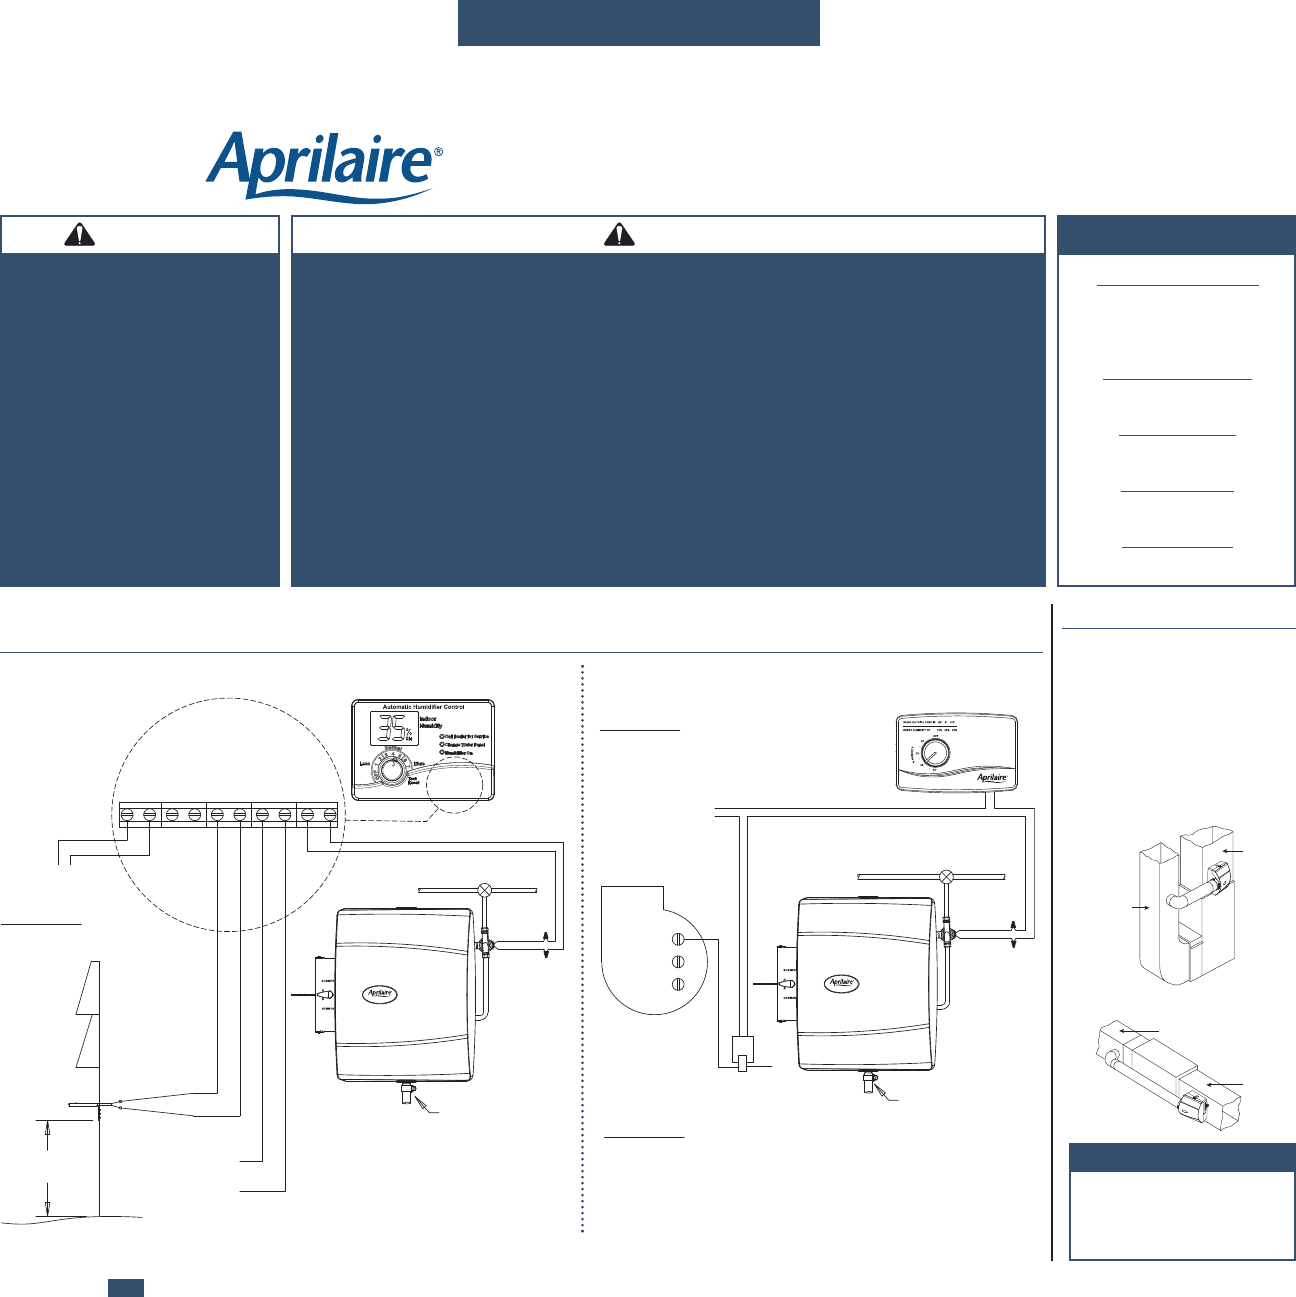 aprilaire wiring diagram Download-Wiring Diagram Download Free Fit U003d2217 Aprilaire Humidifier 00m User Guide Manuals line 16 16-i